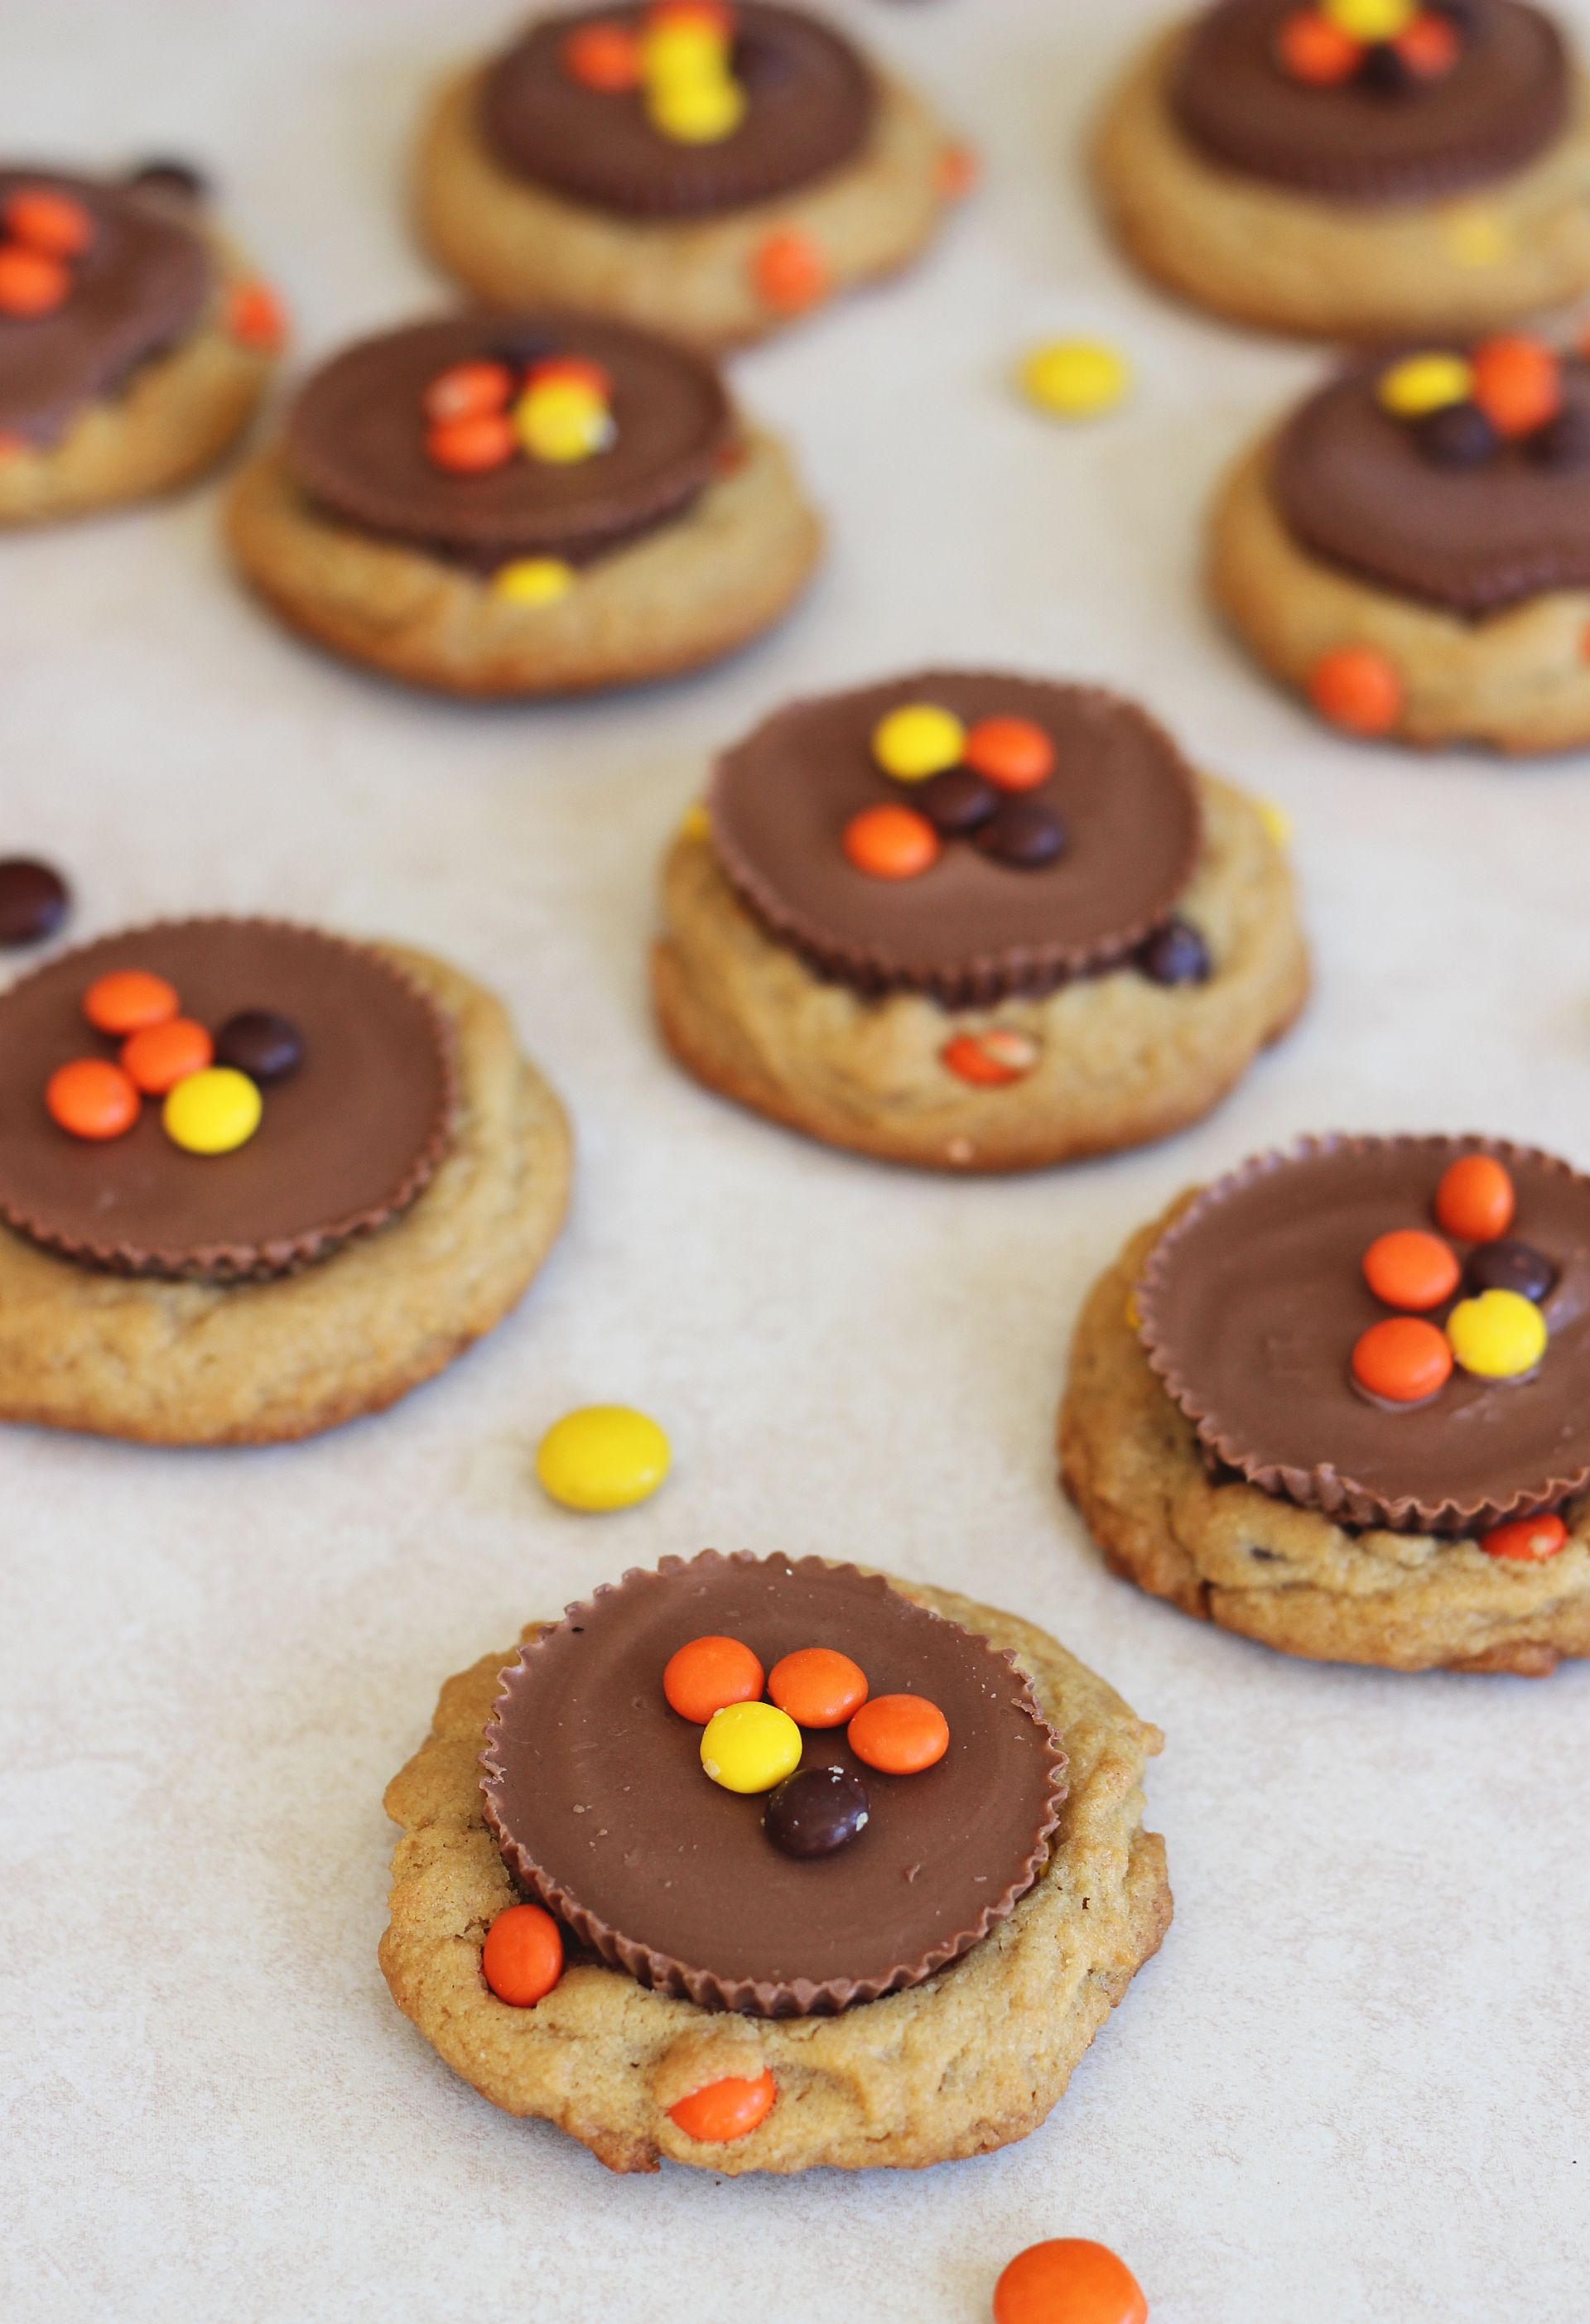 Reese's Peanut Butter Cup & Reese's Pieces Cookies